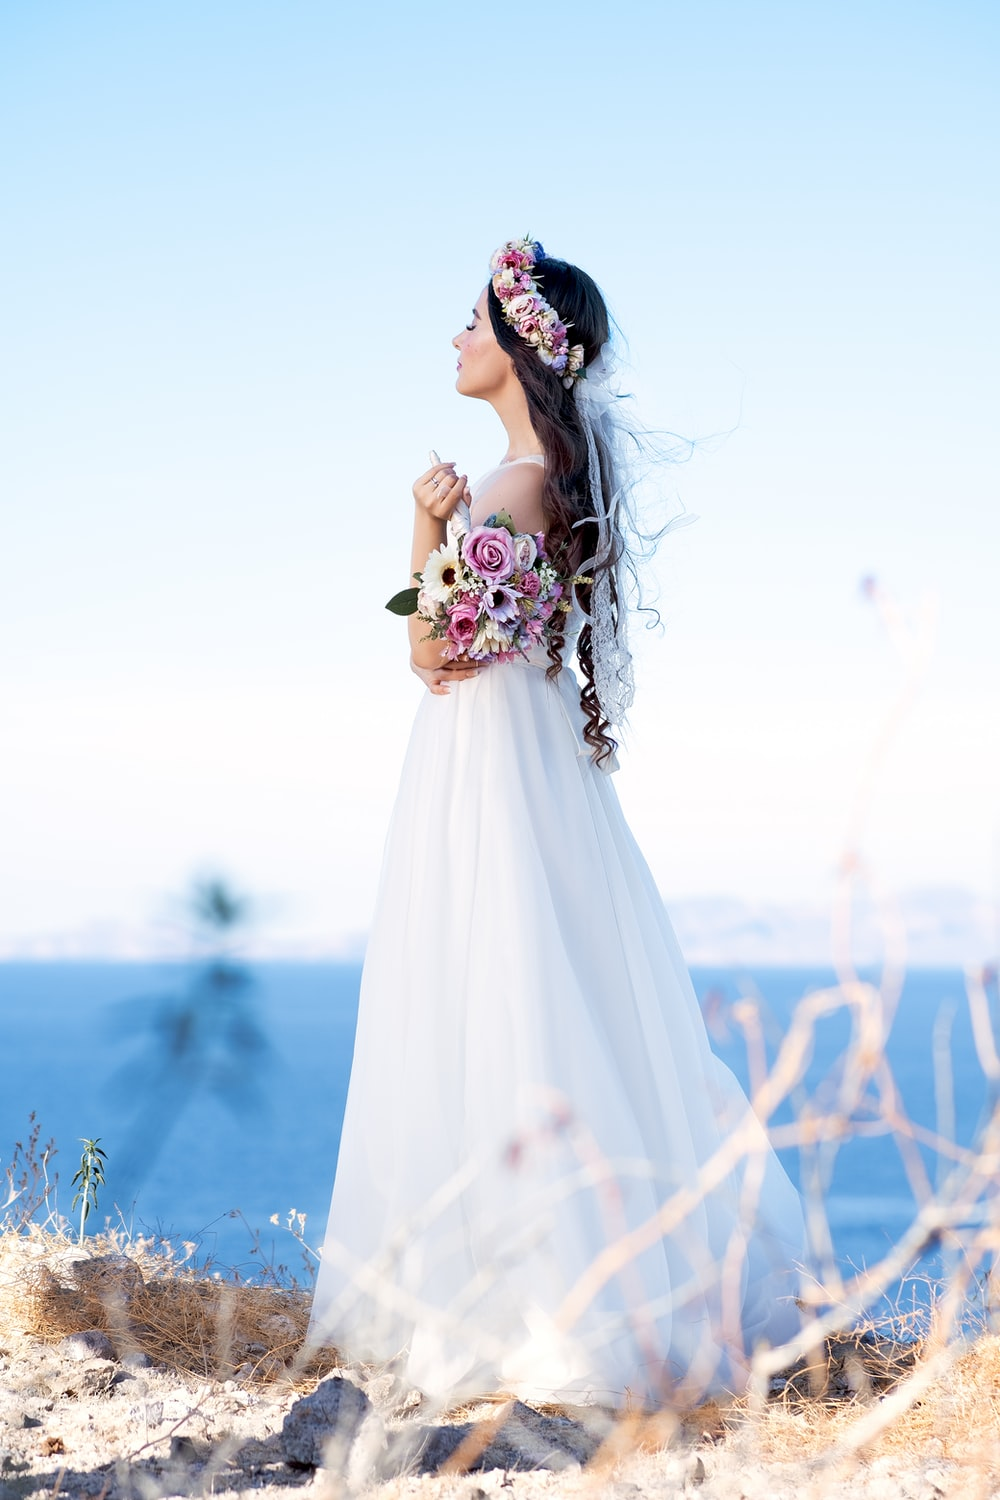 woman in white wedding dress standing on brown grass field during daytime